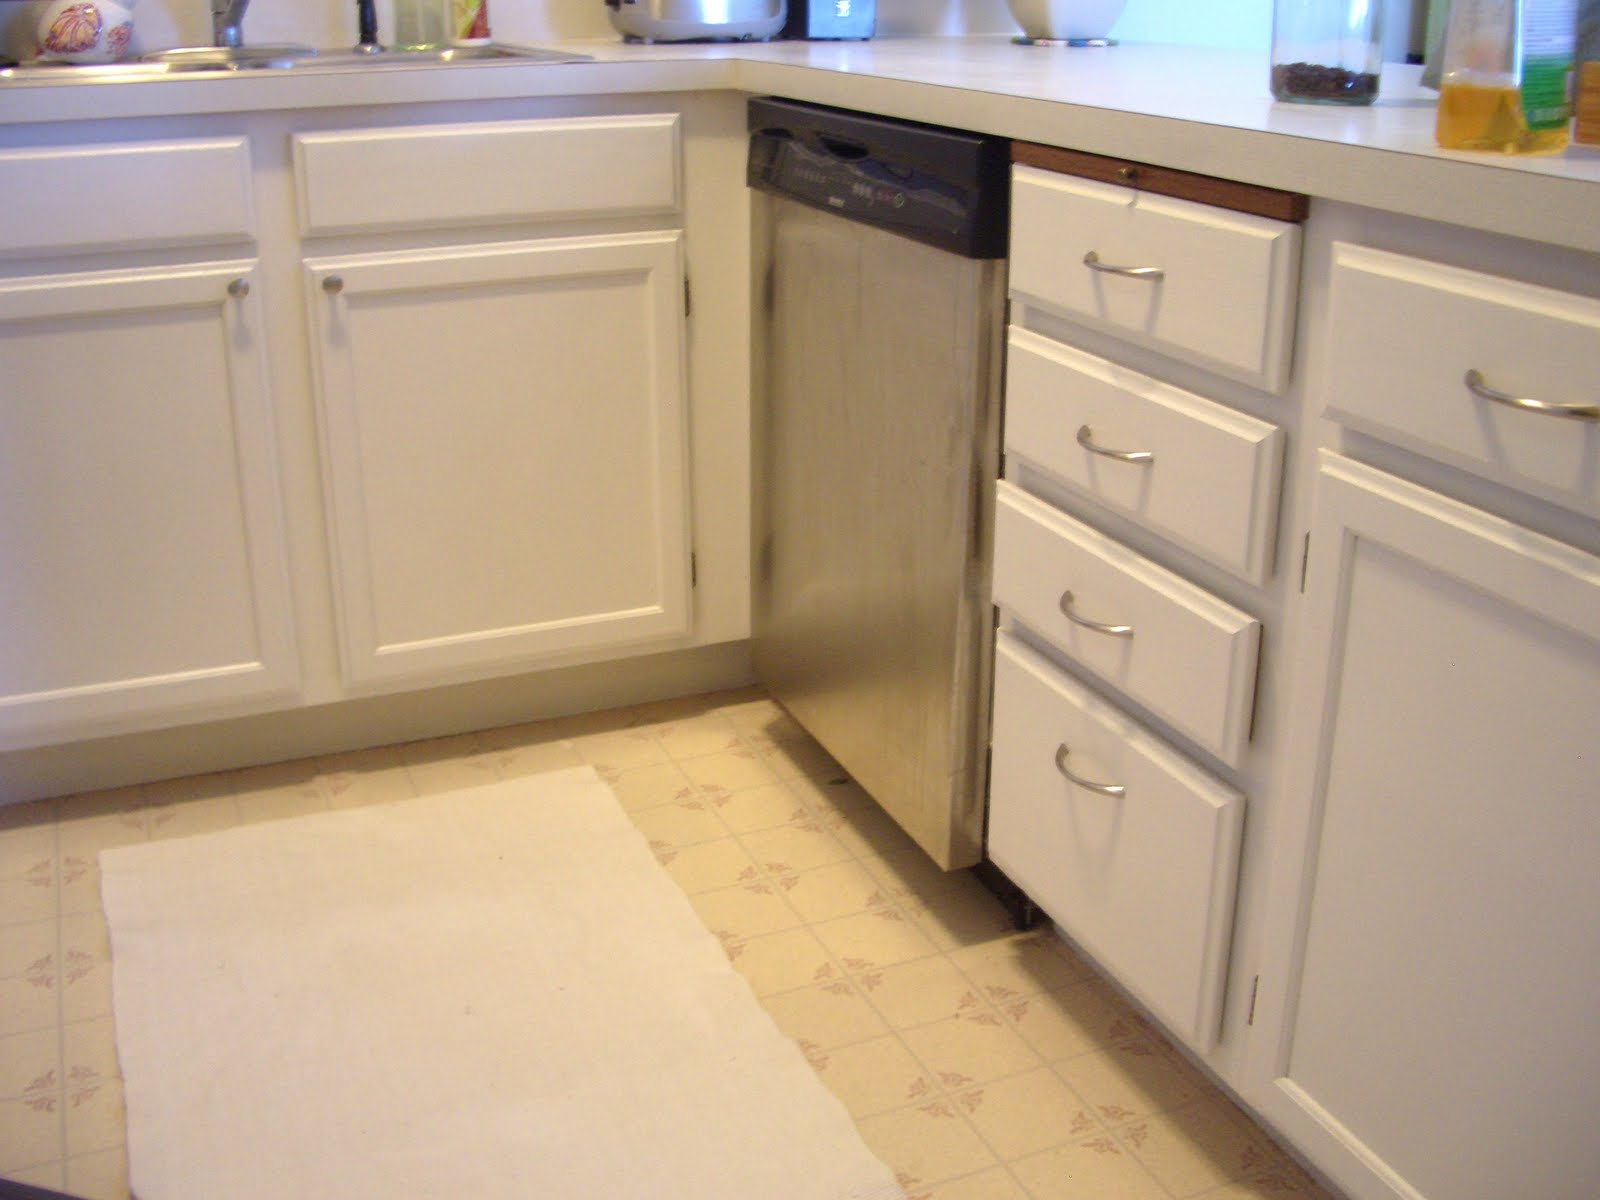 Rustoleum Countertop Paint White : kit lowe s cabinet painting kit rust oleum countertop rustoleum ...